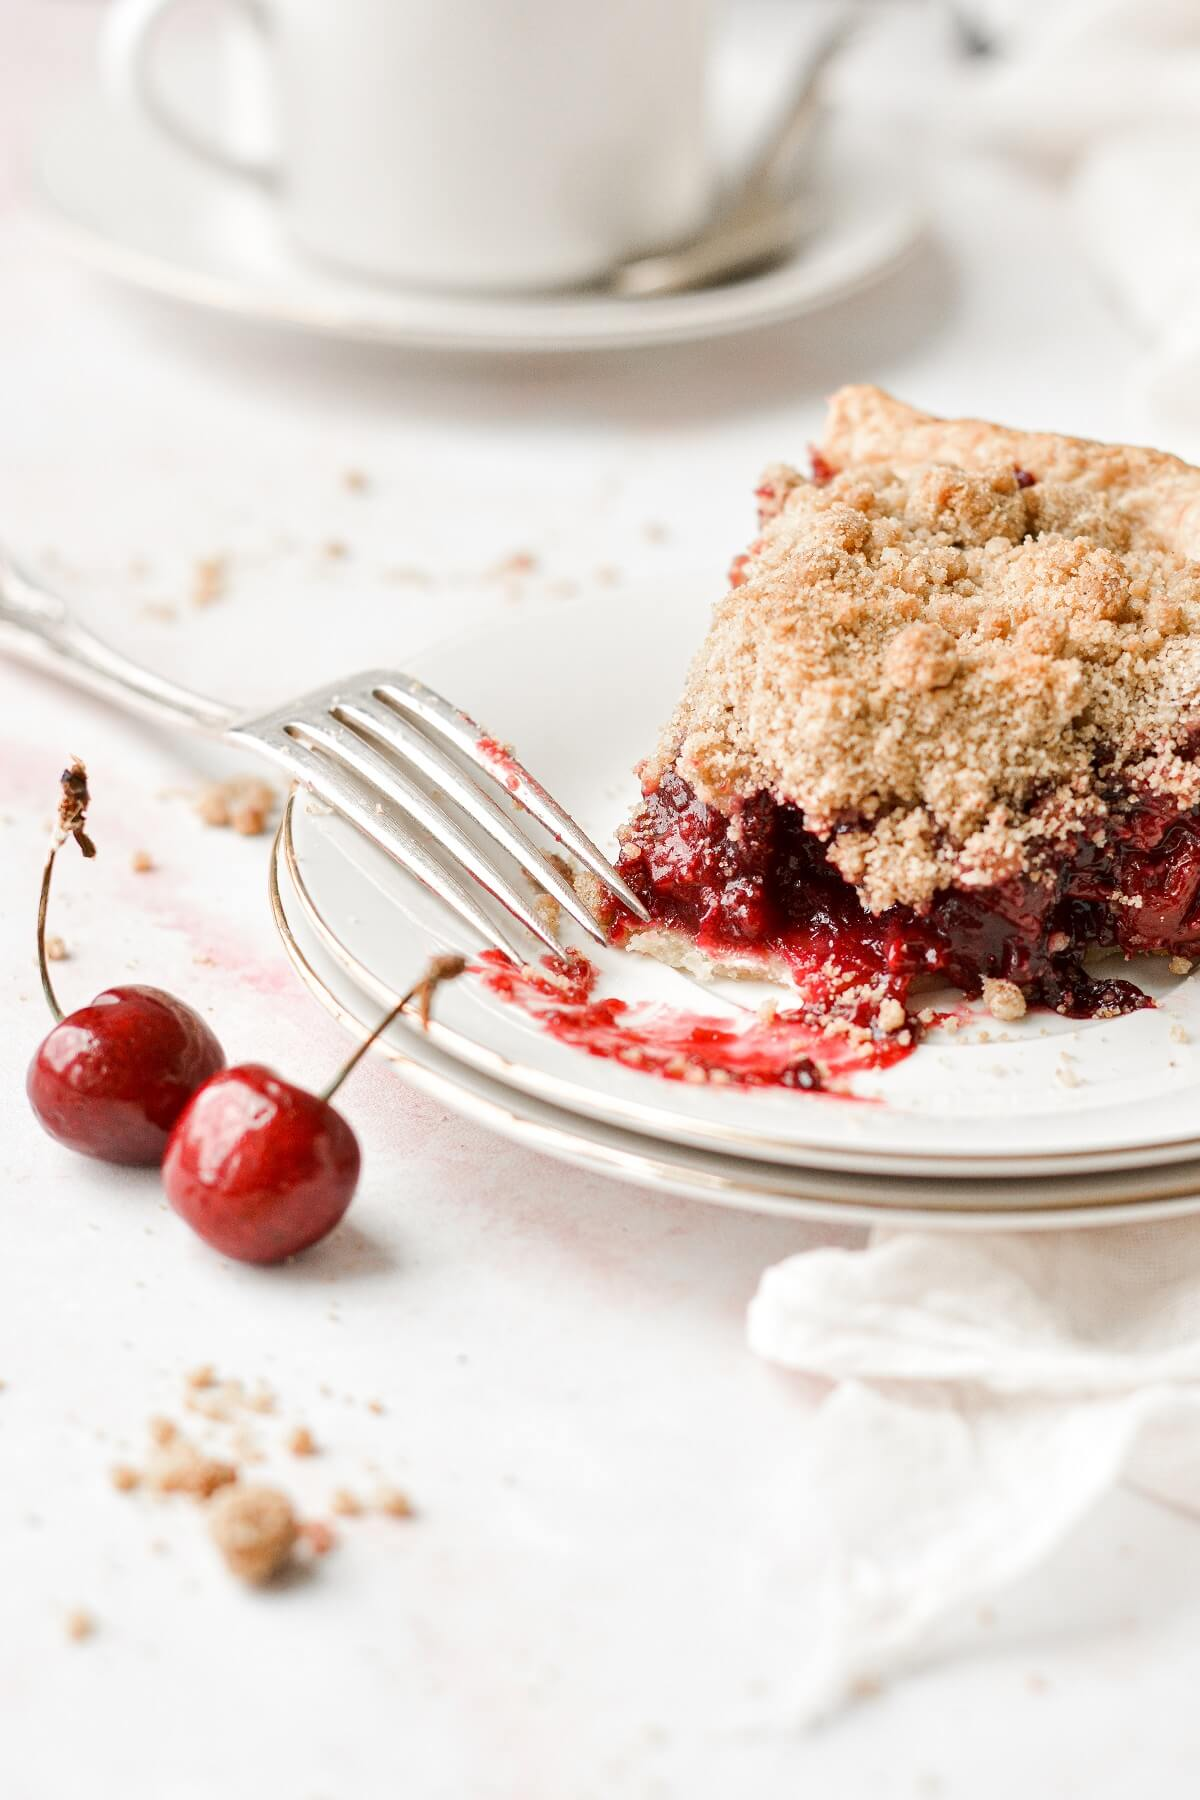 A slice of cherry crumb pie with a bite taken.